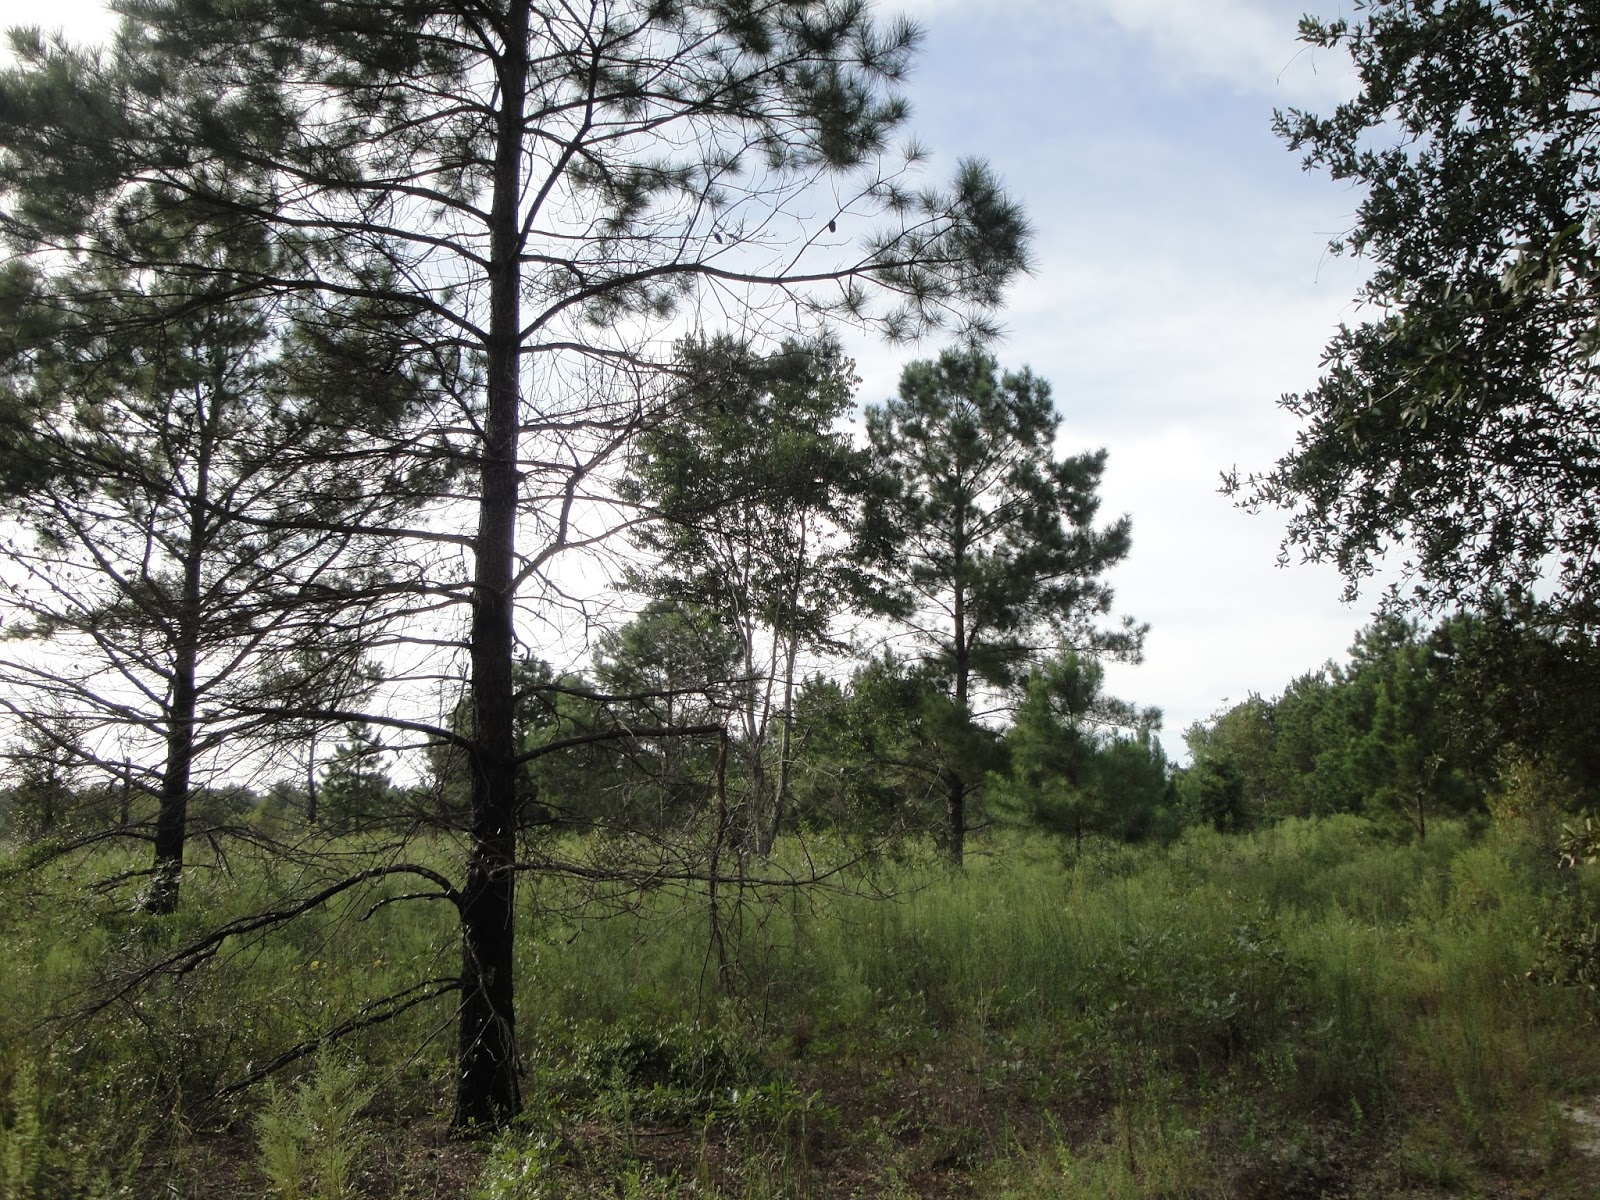 18 acres of land for sale in Lake City Wellborn, Florida